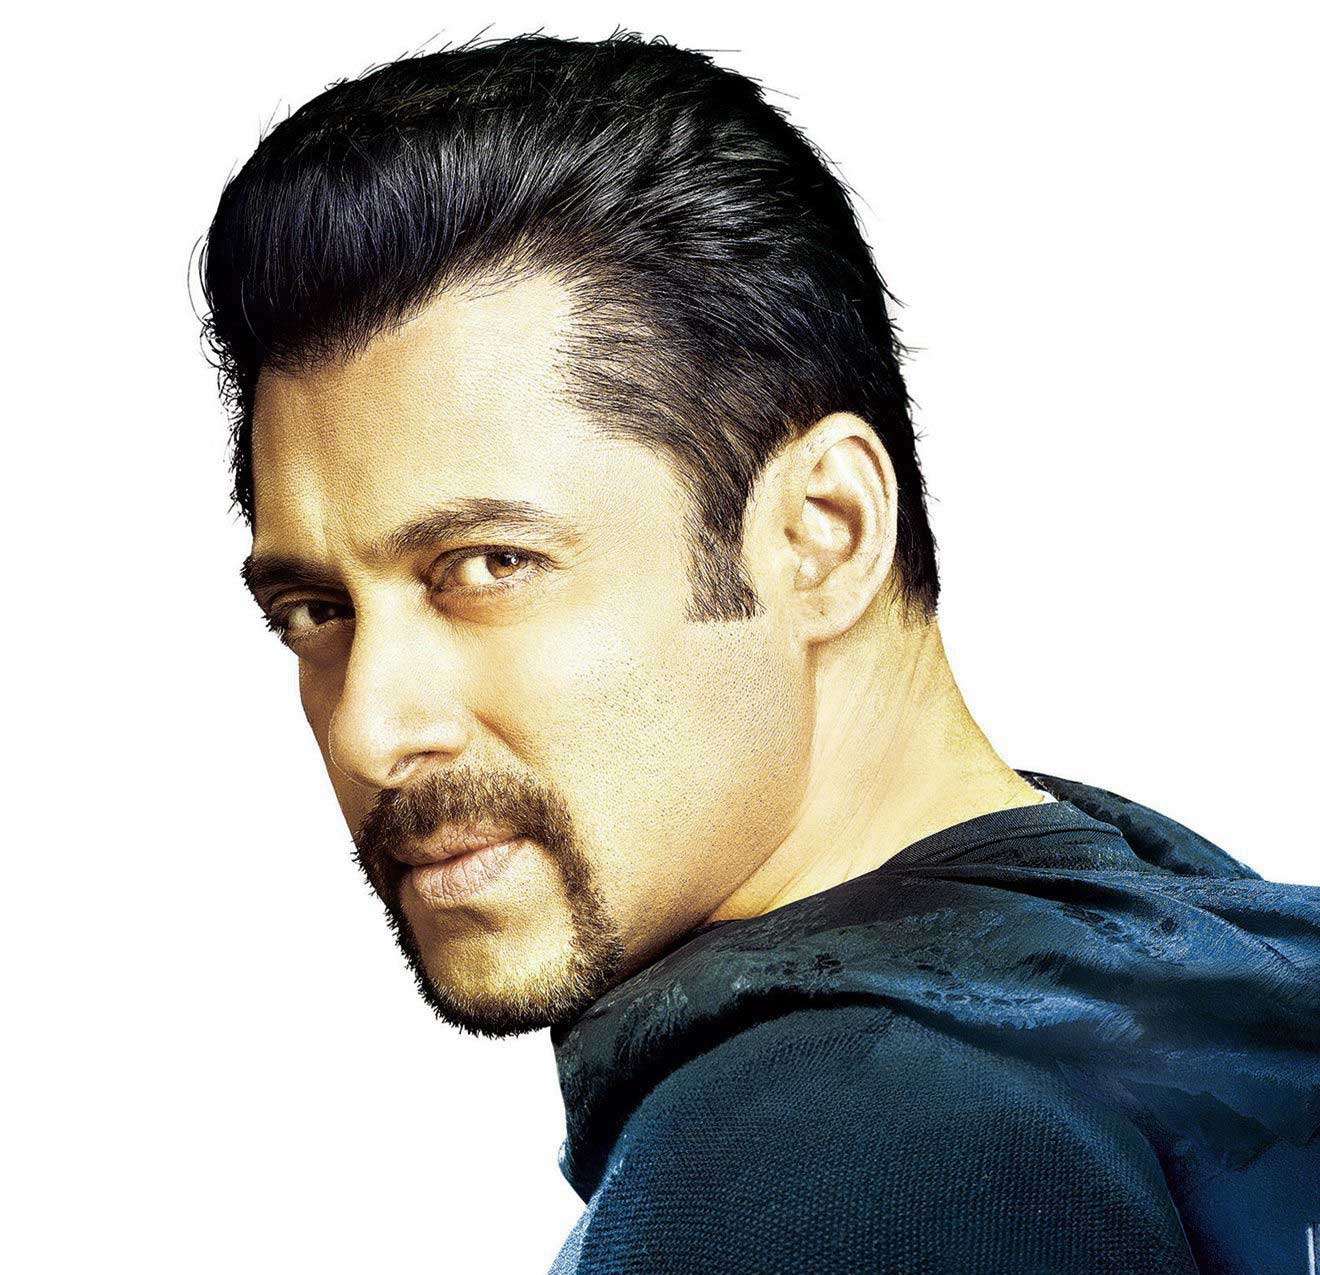 Salman Khan Images HD Free 59